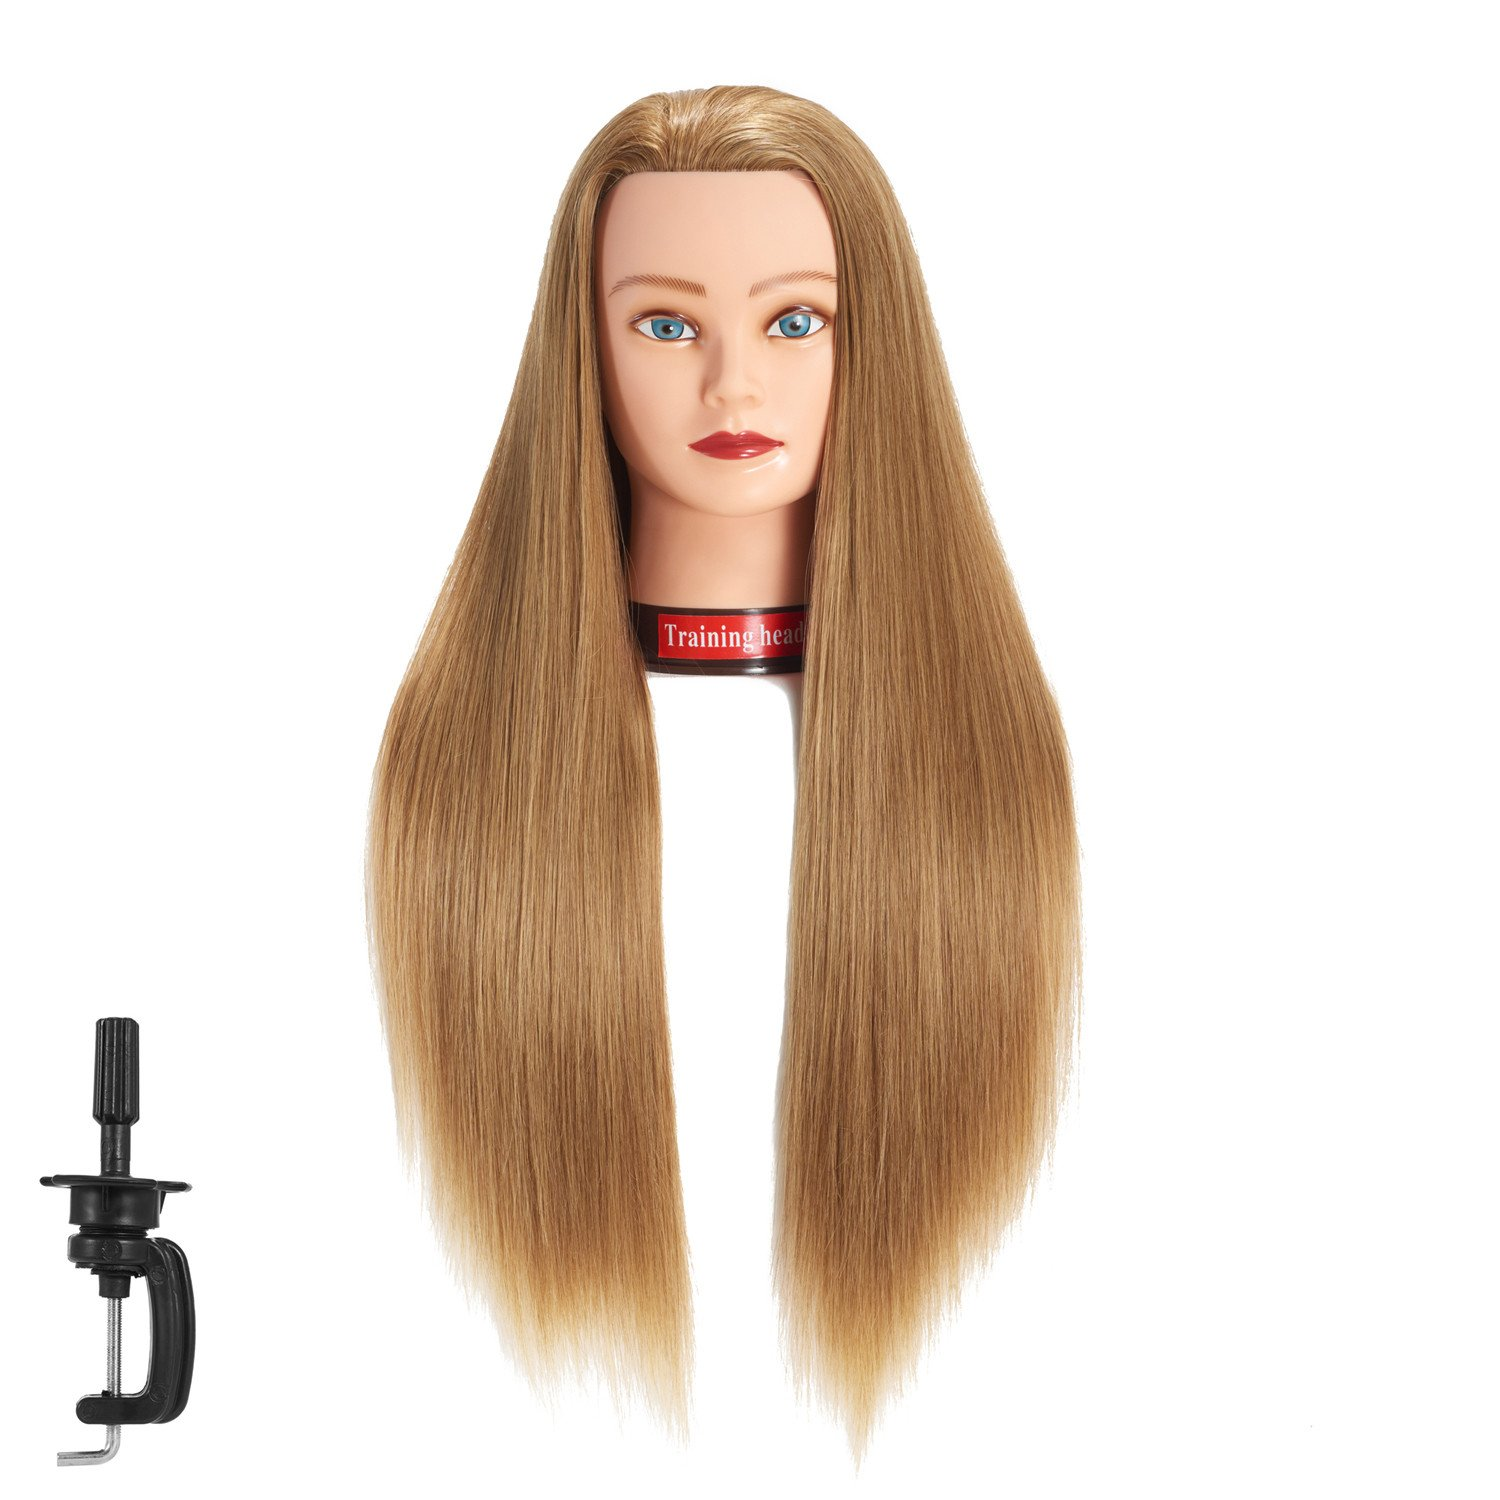 26-28 Mannequin Head Hair Styling Training Head Manikin Cosmetology Doll Head Synthetic Fiber Hair Hairdressing training model with free clamp